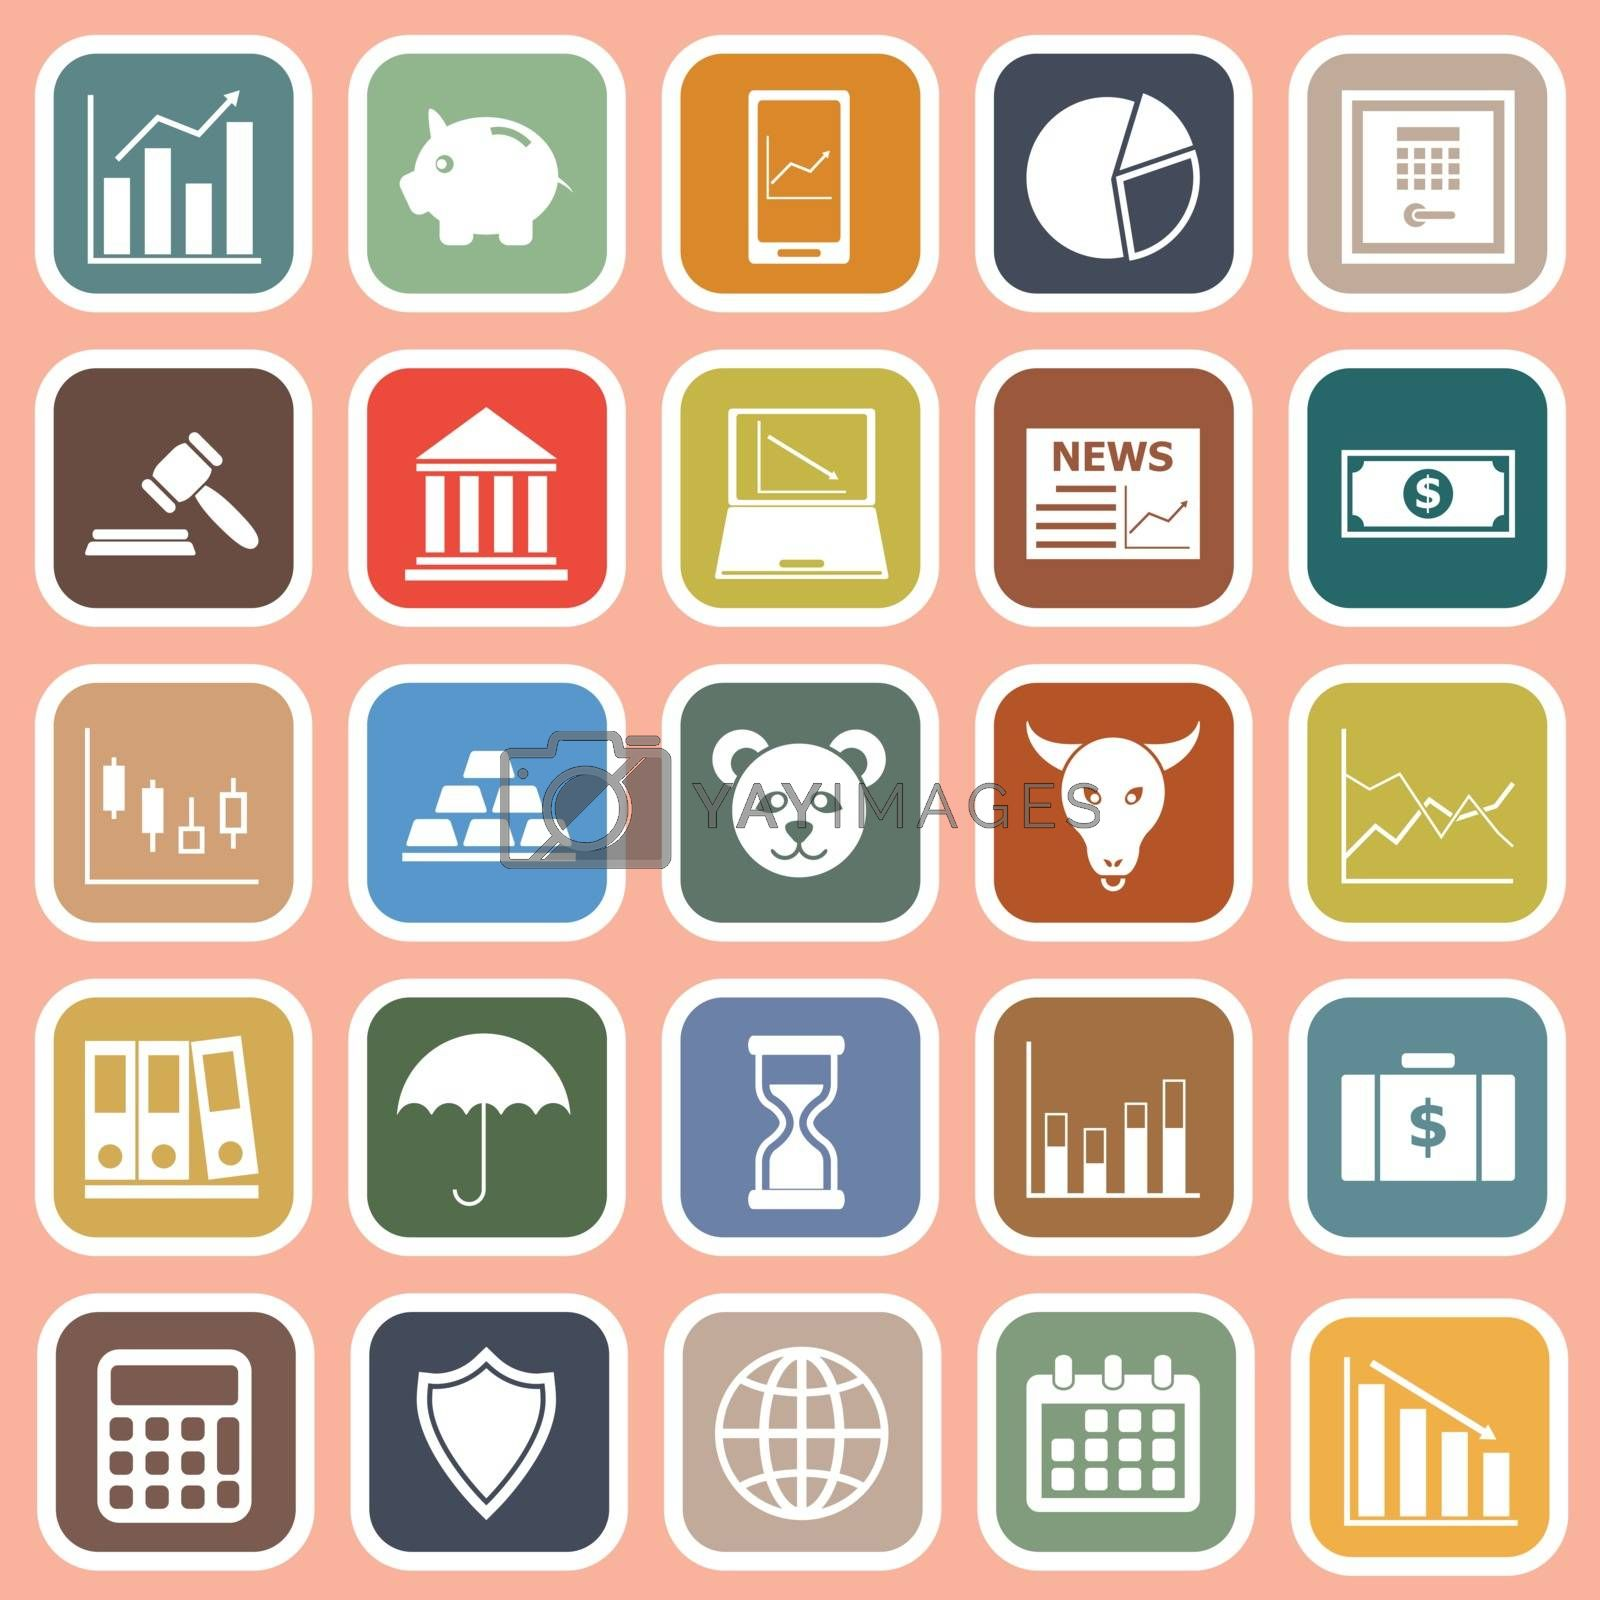 Stock market flat icons on red background by punsayaporn